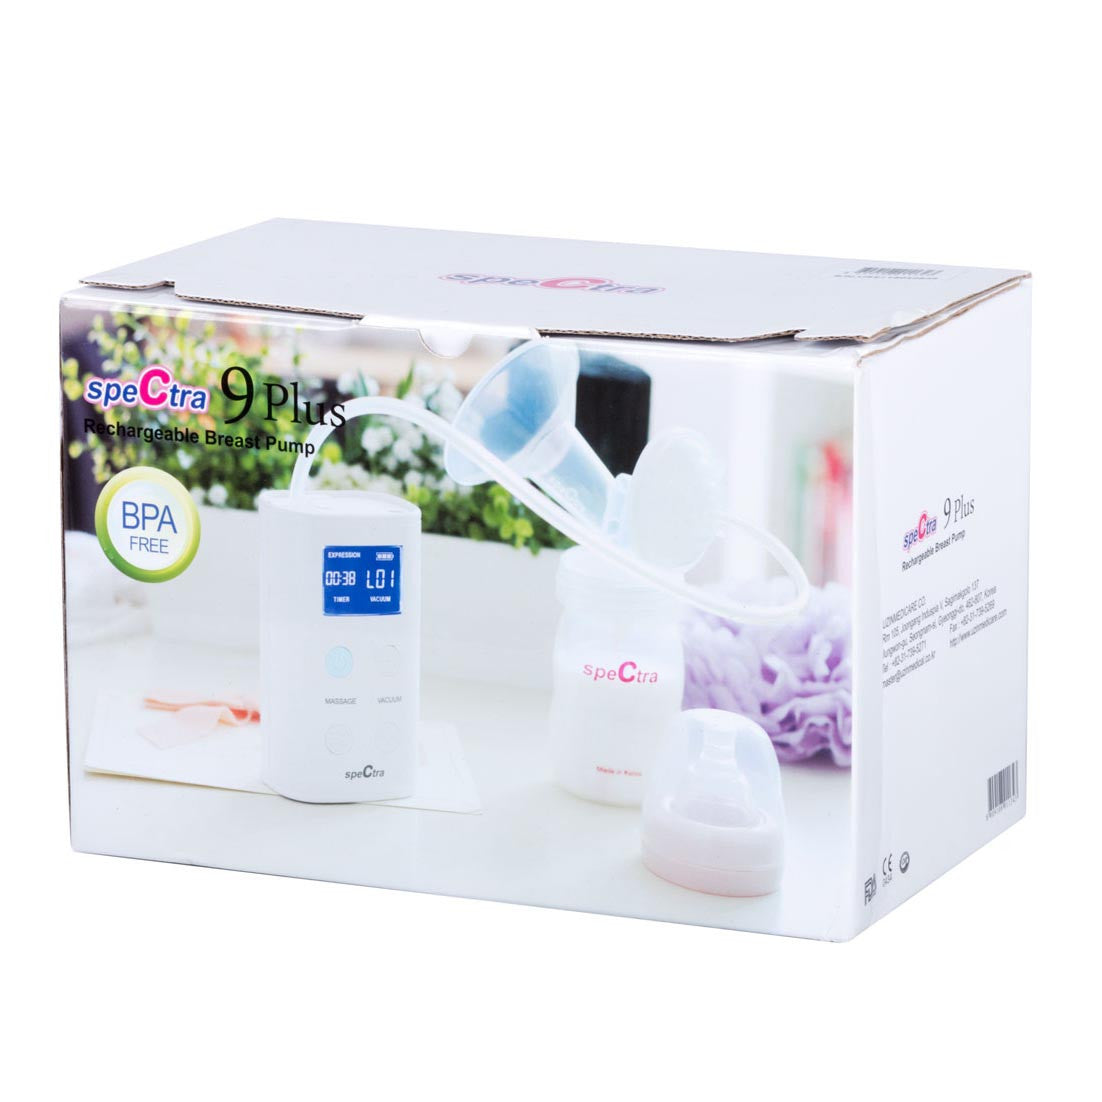 Spectra S9 Breast Pump Insurance Tricare Covered Breast